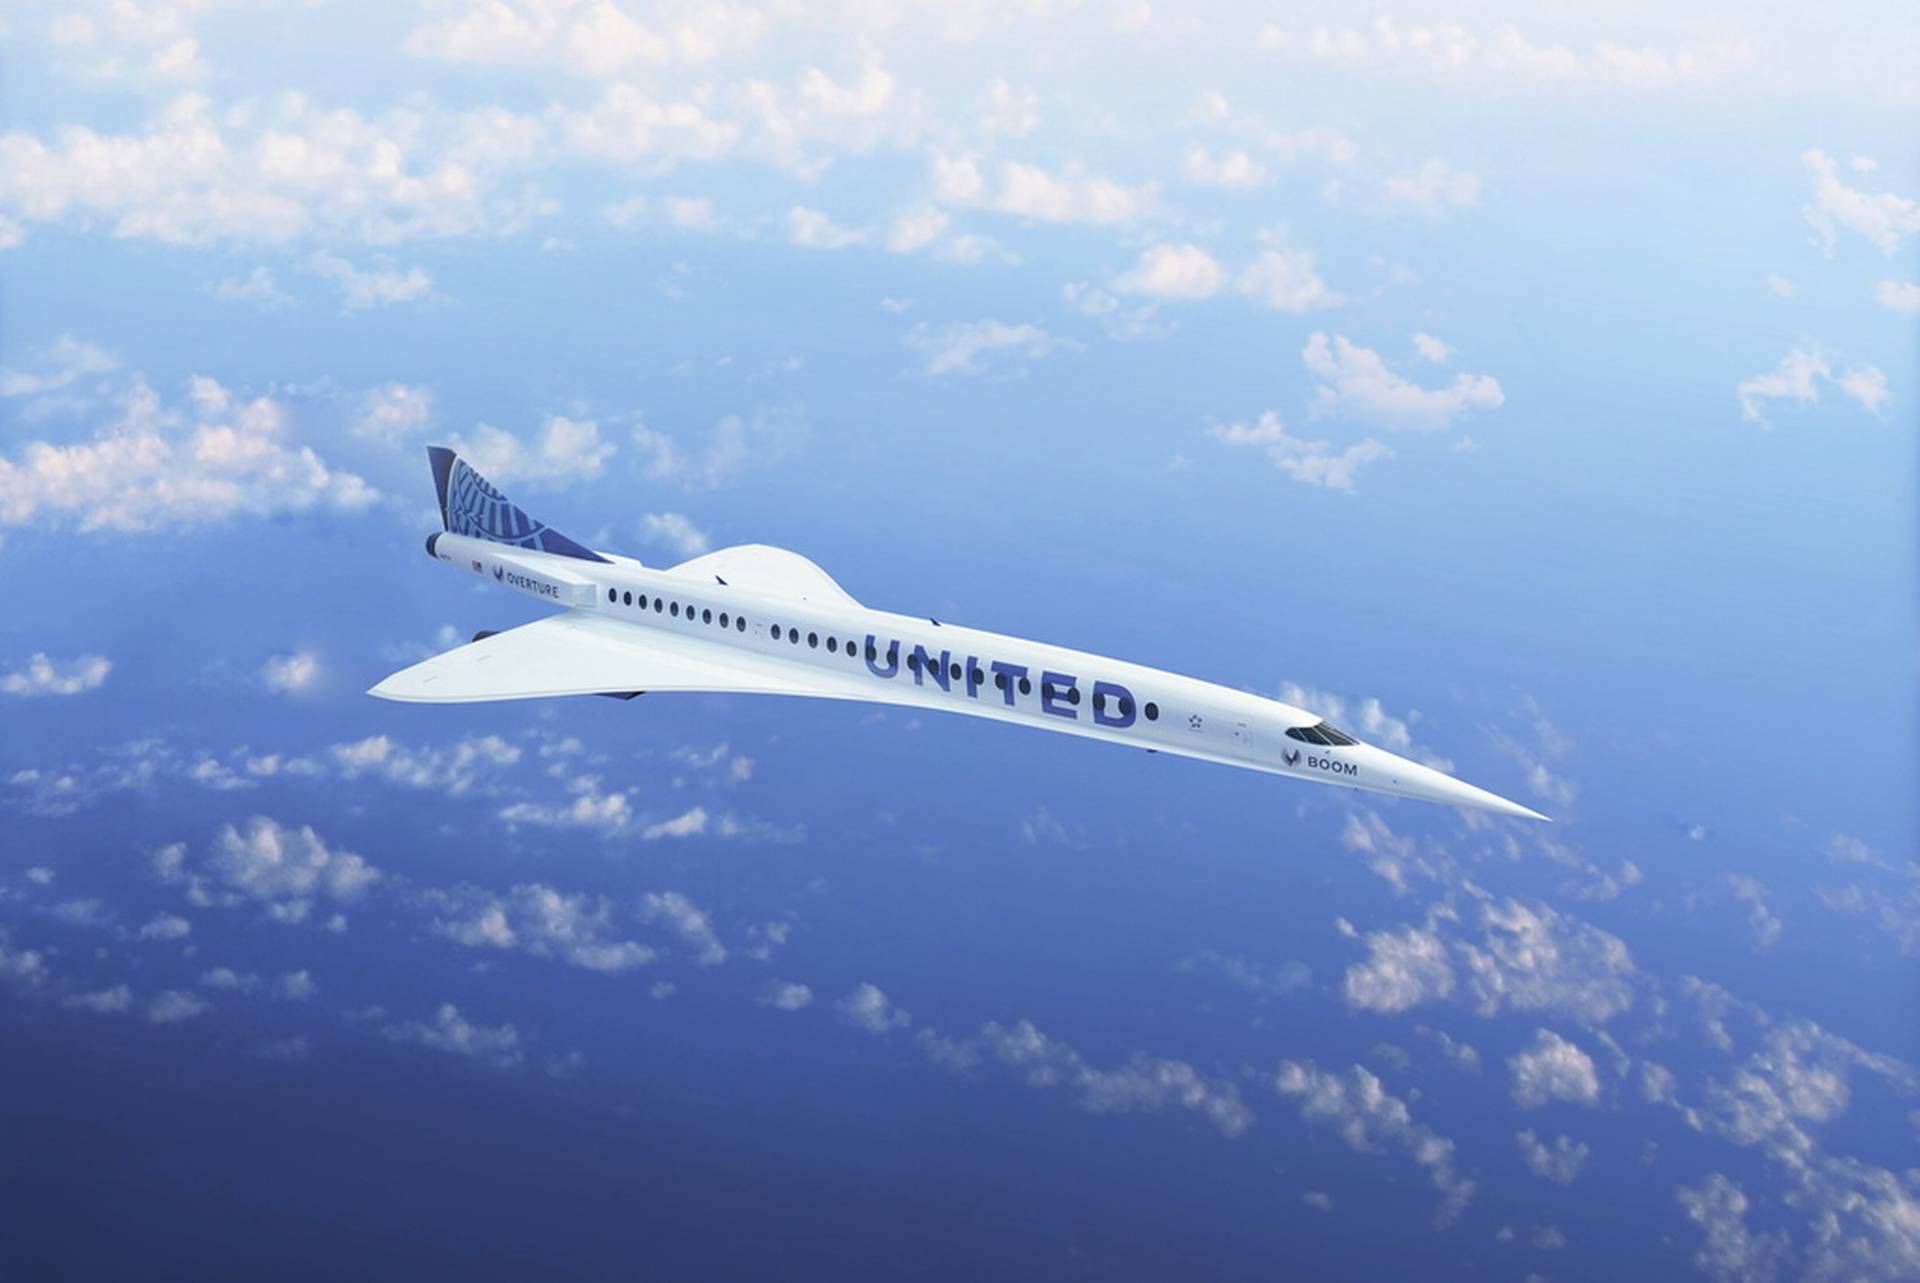 Their supersonic aircraft can halve the flight time to the United States